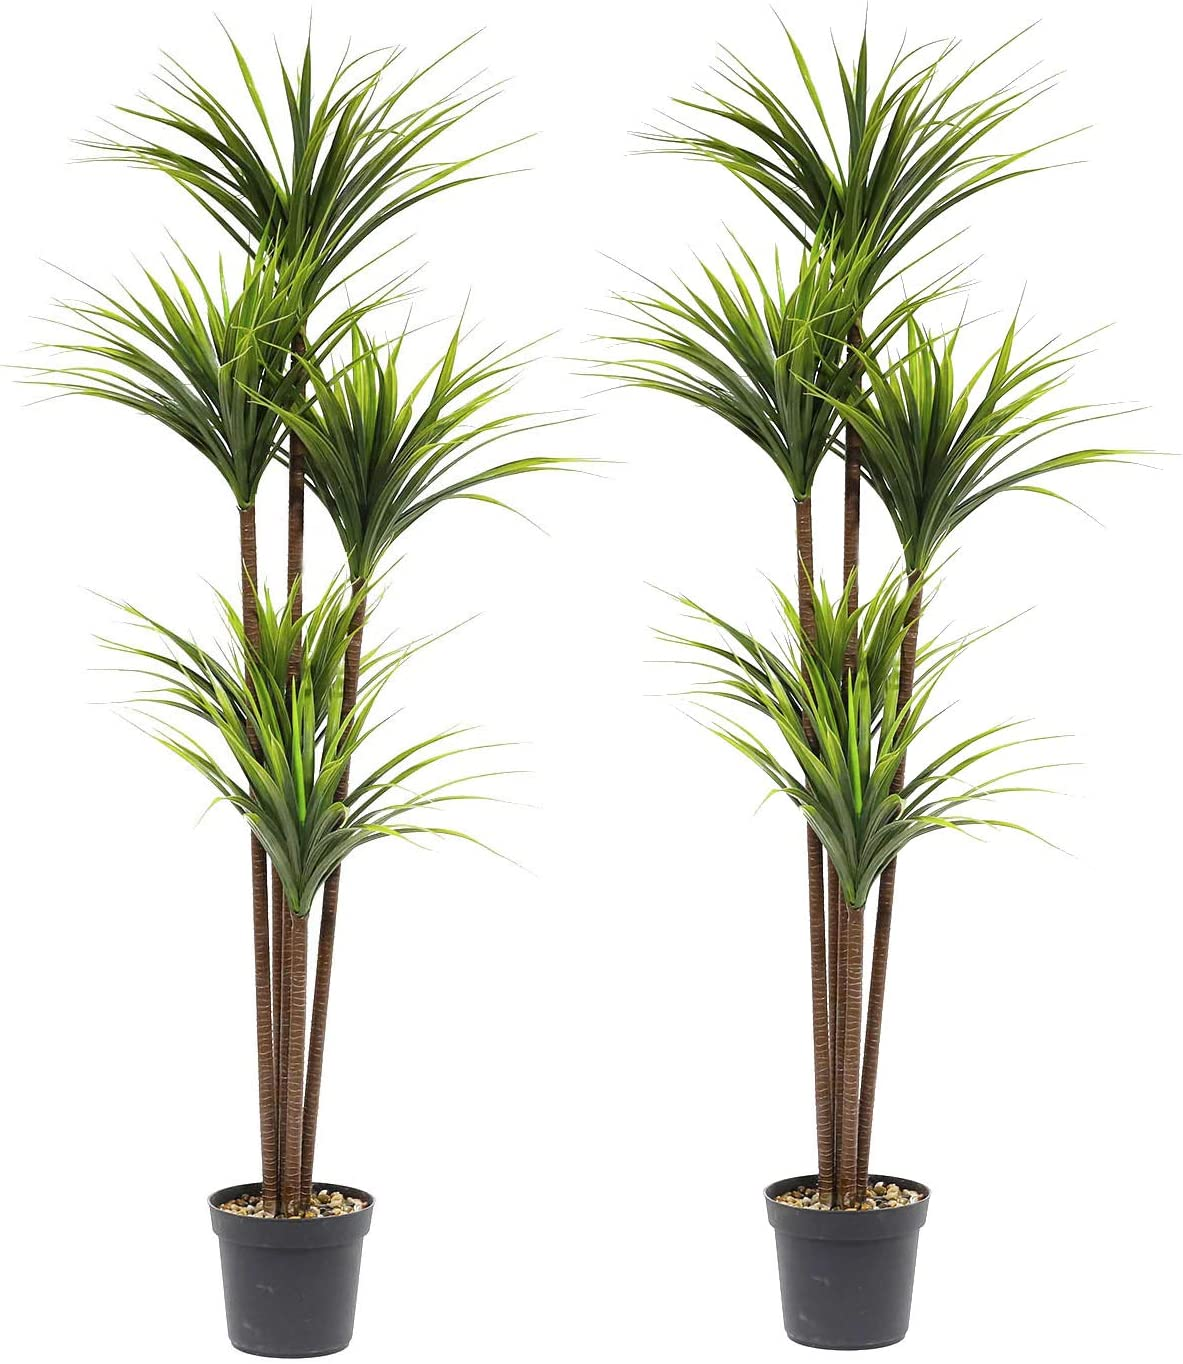 63 inch Artificial Boxwood Topiary New product! New type Tree Cane Palm Golden Ar Silk Max 61% OFF